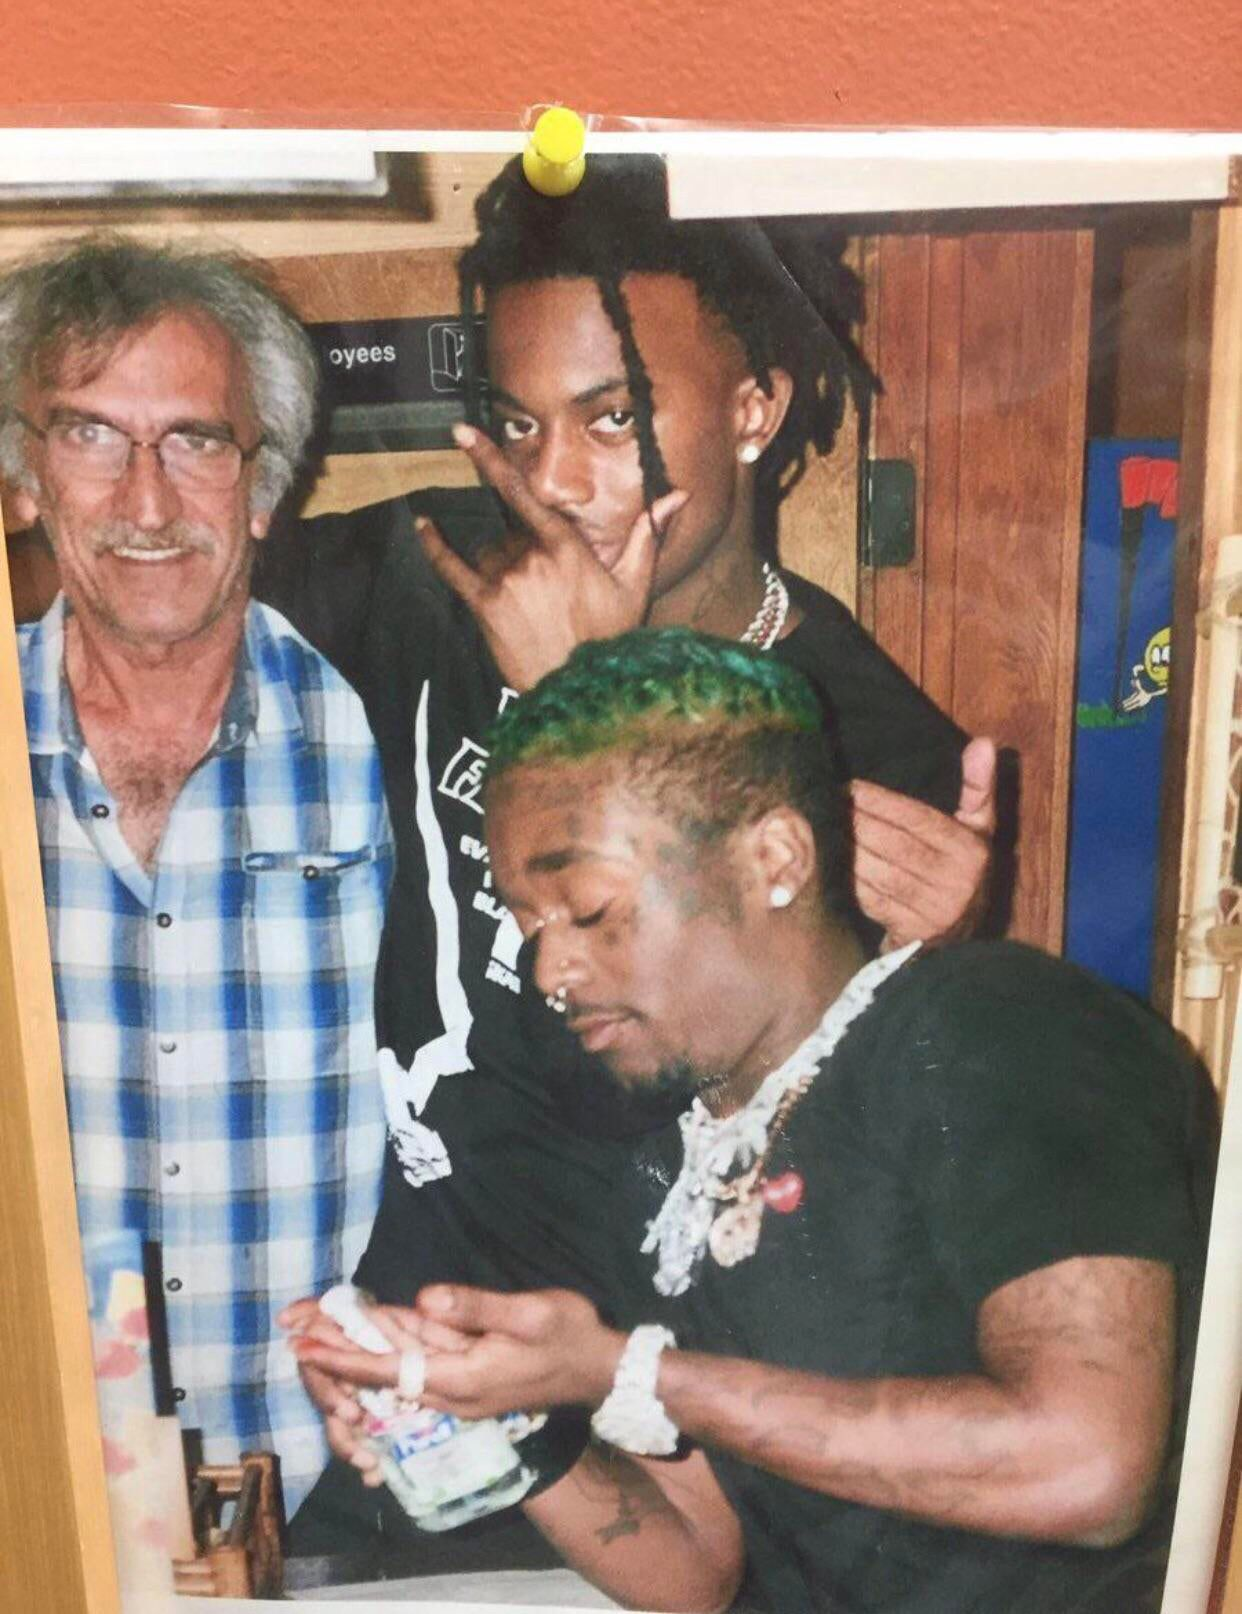 Pin by Semir on music//rap Rappers, Rare photos